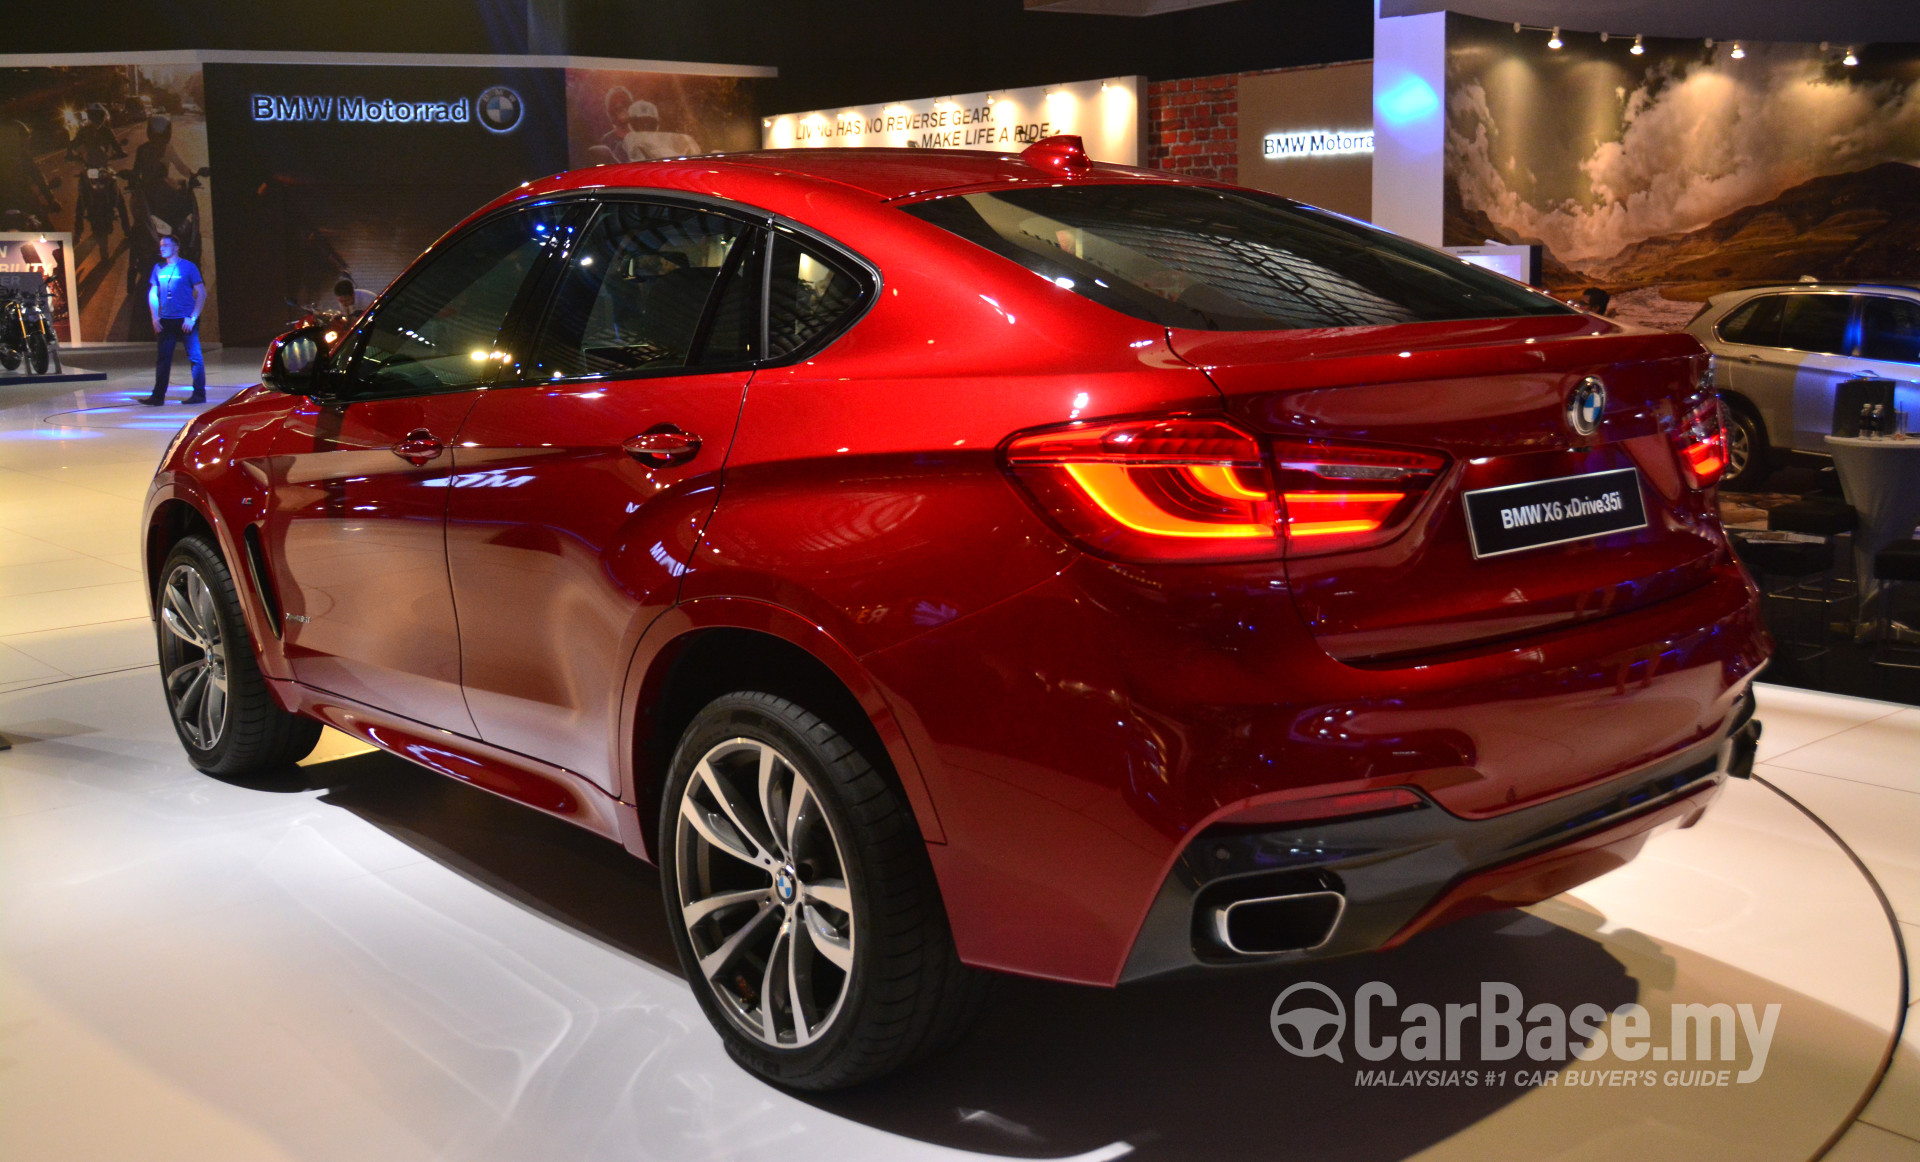 Bmw X6 F16 2015 Exterior Image 20850 In Malaysia